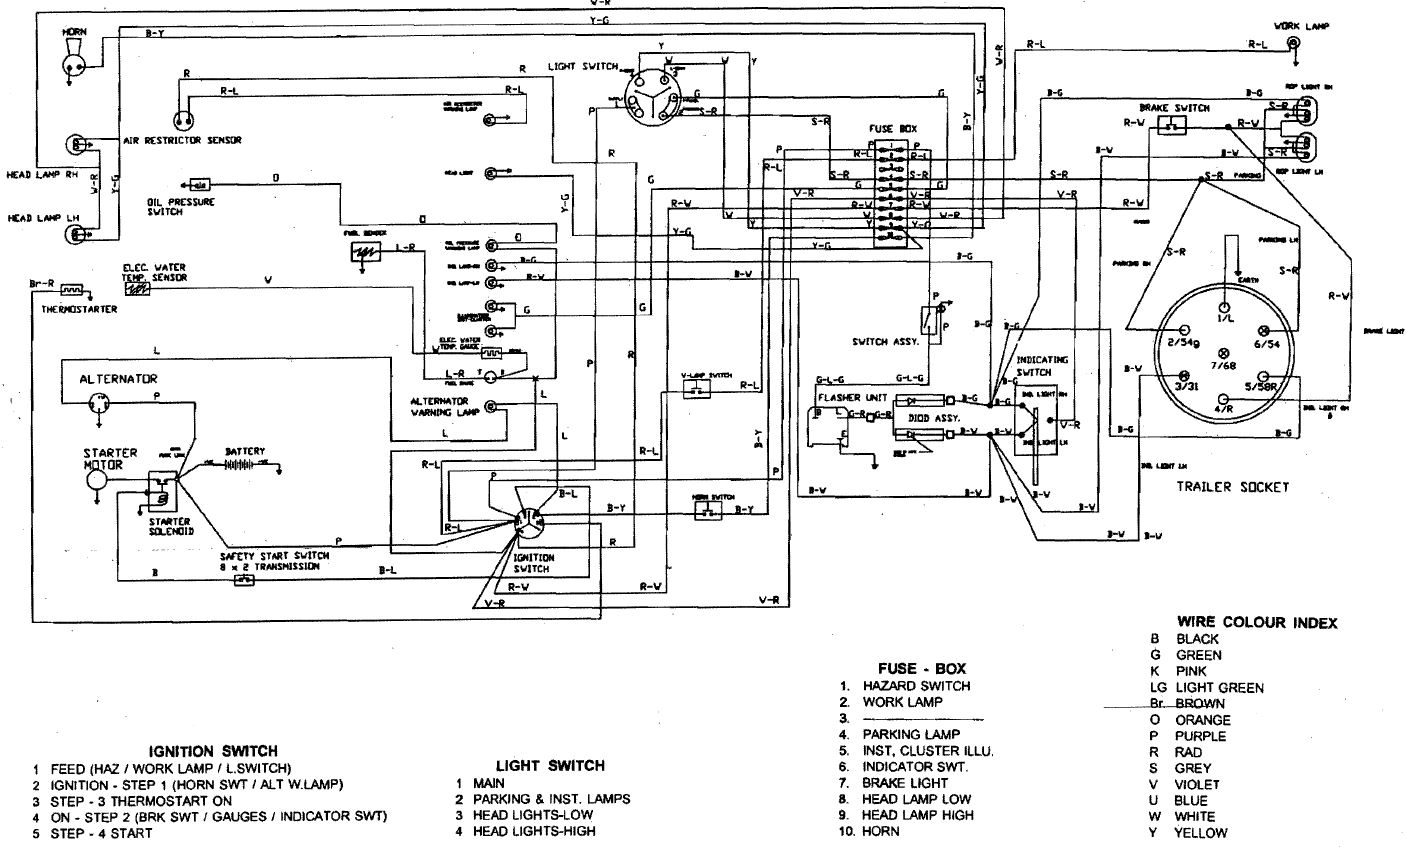 20158463319_b82d524c3d_o ignition switch wiring diagram kubota ignition switch wiring diagram at fashall.co